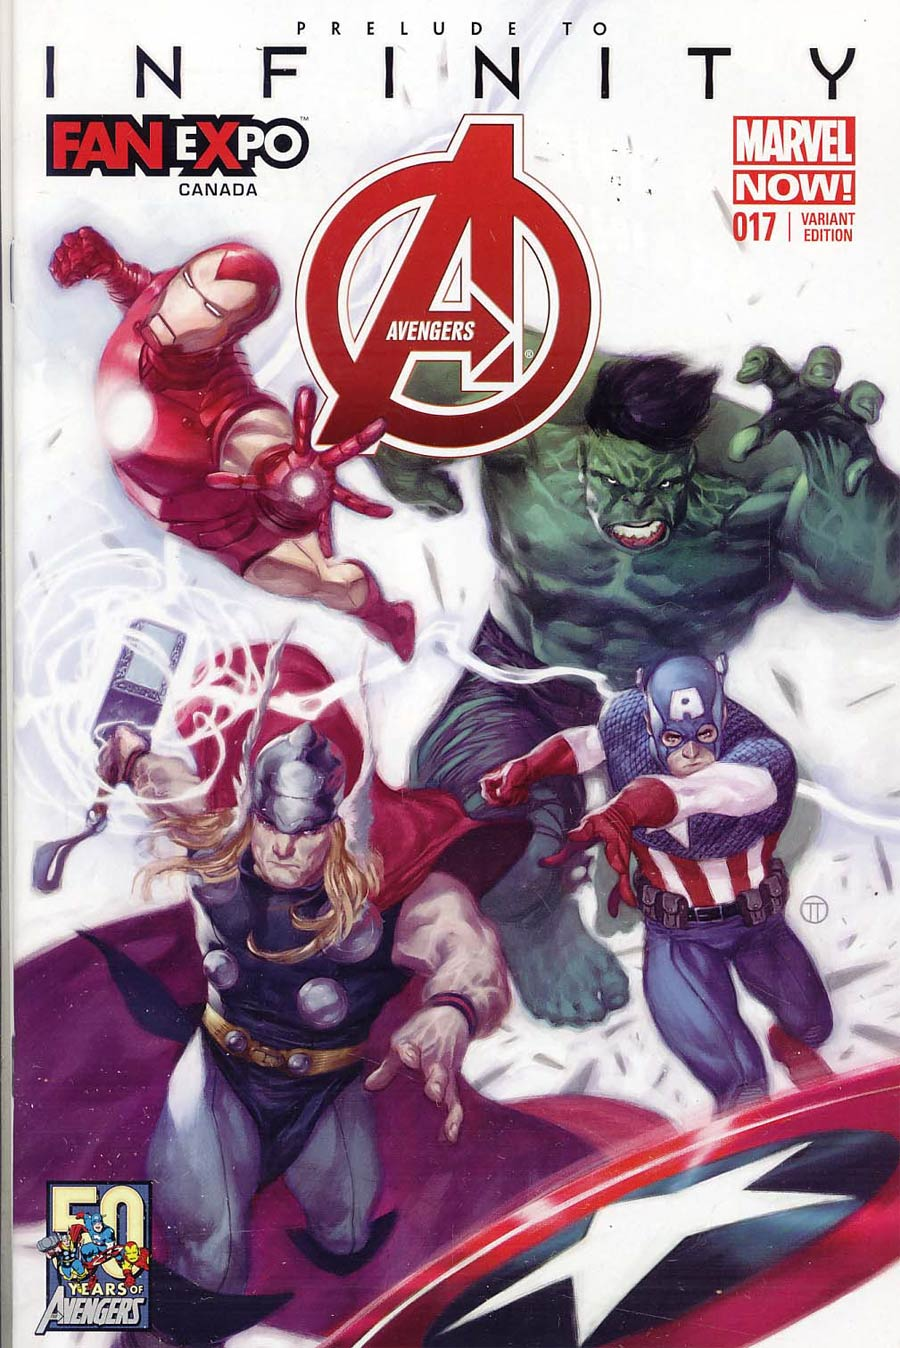 Avengers Vol 5 #17 Cover B (Infinity Prelude) Fan Expo Canada Edition